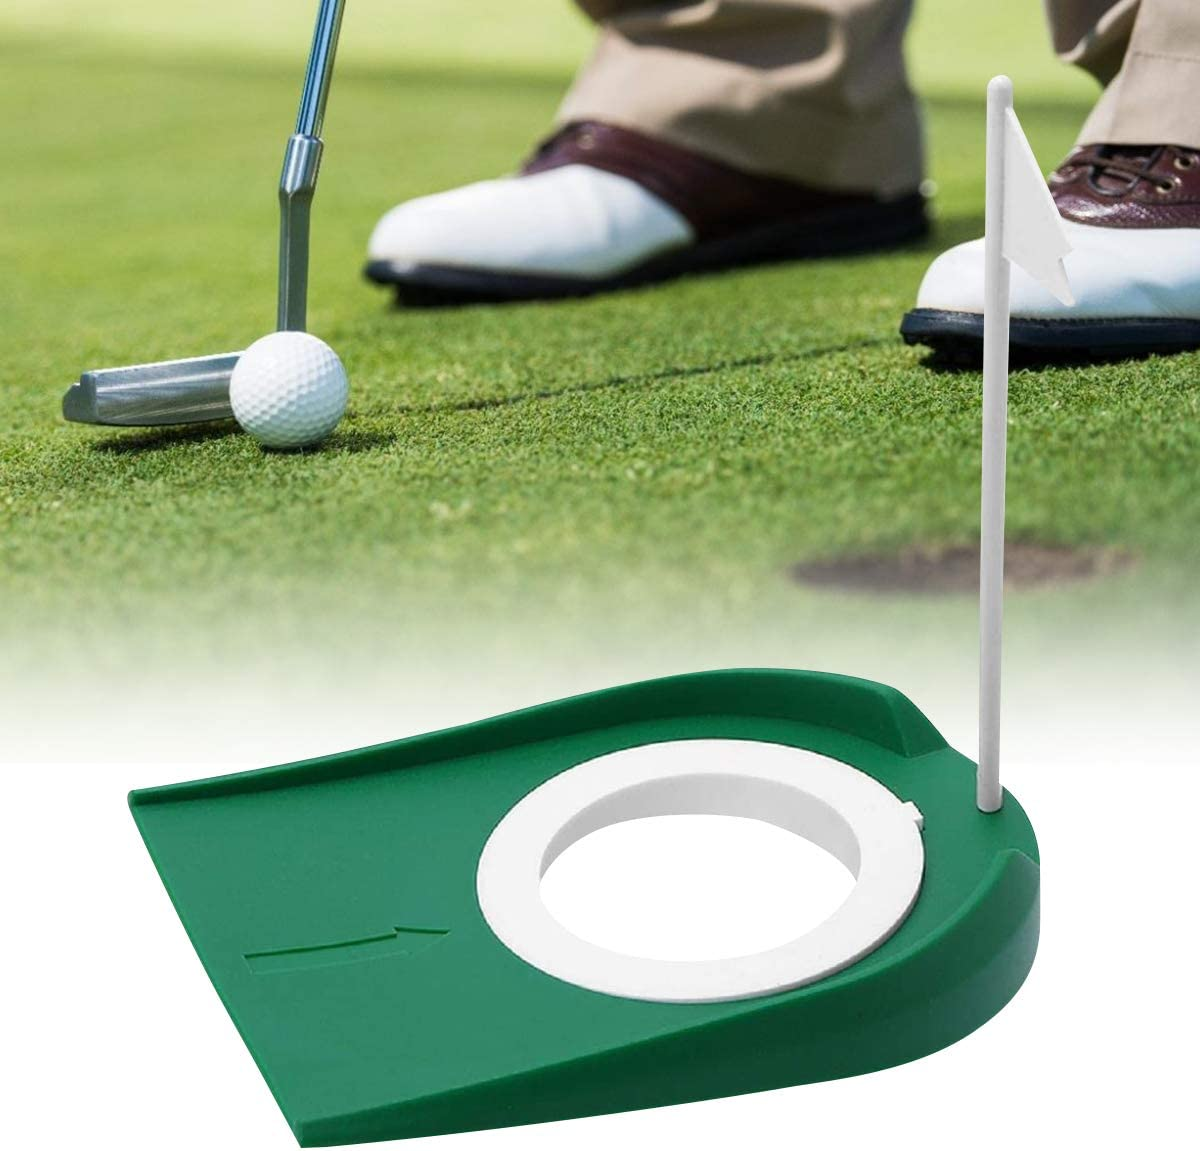 Golf Putting Cup Indoor Practice Training Aids, Golf Practice Putting Cup with Hole and Flag Plastic, for Office Garage Yard Indoor Outdoor Golf Putting Hole Putter Regulation Cup